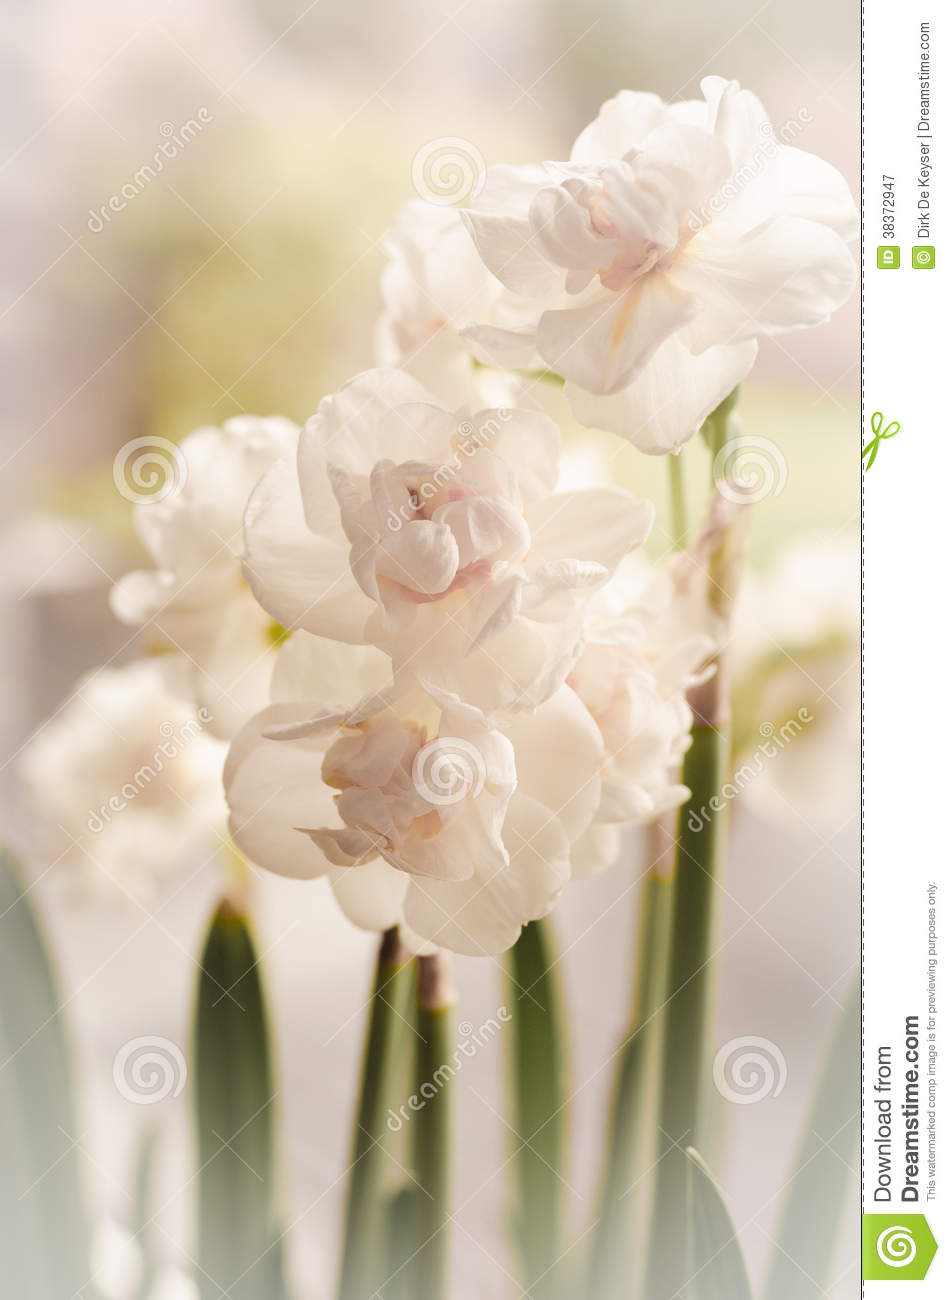 White narcissus and green spring